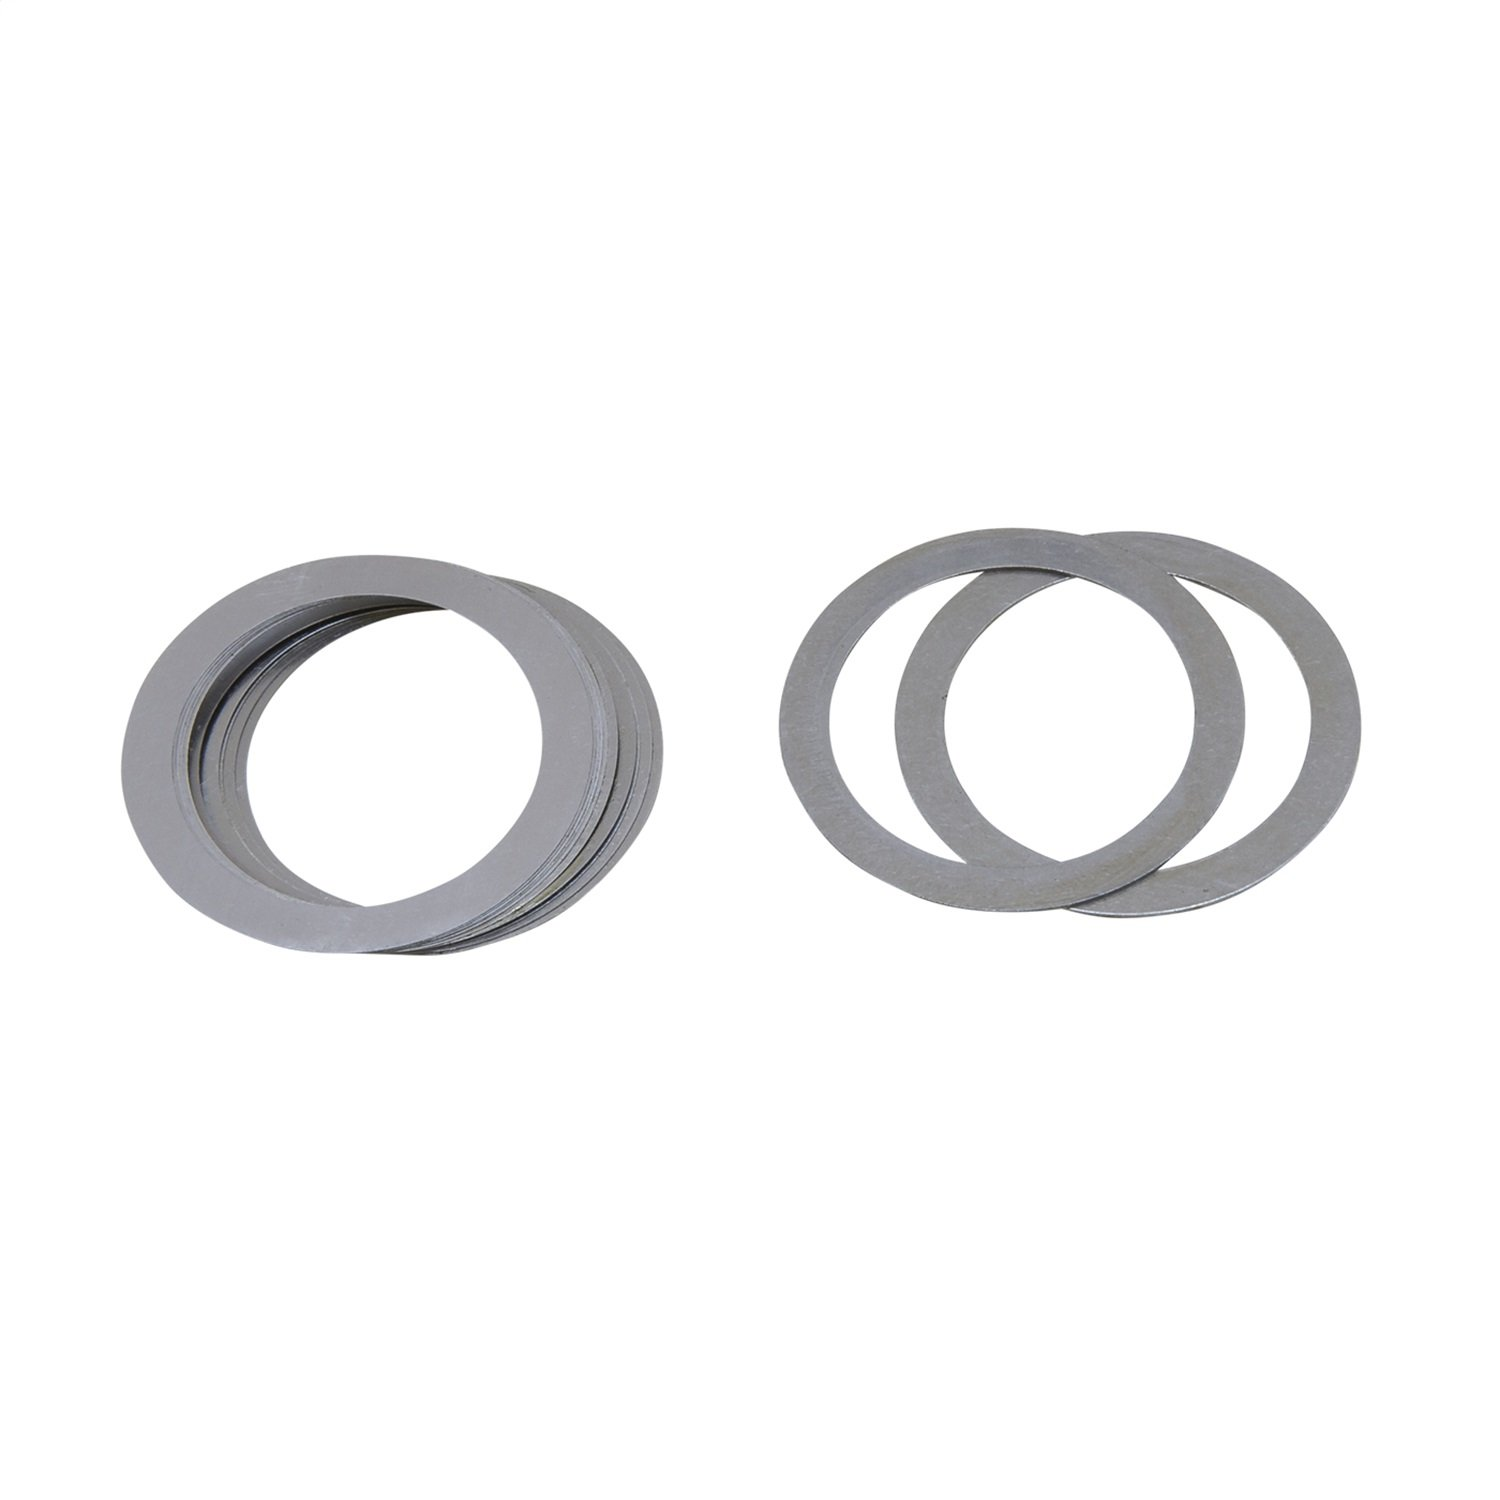 Yukon (SK 706087) Replacement Carrier Shim Kit for Dana 30/44 Differential with 19-Spline Axle Yukon Gear